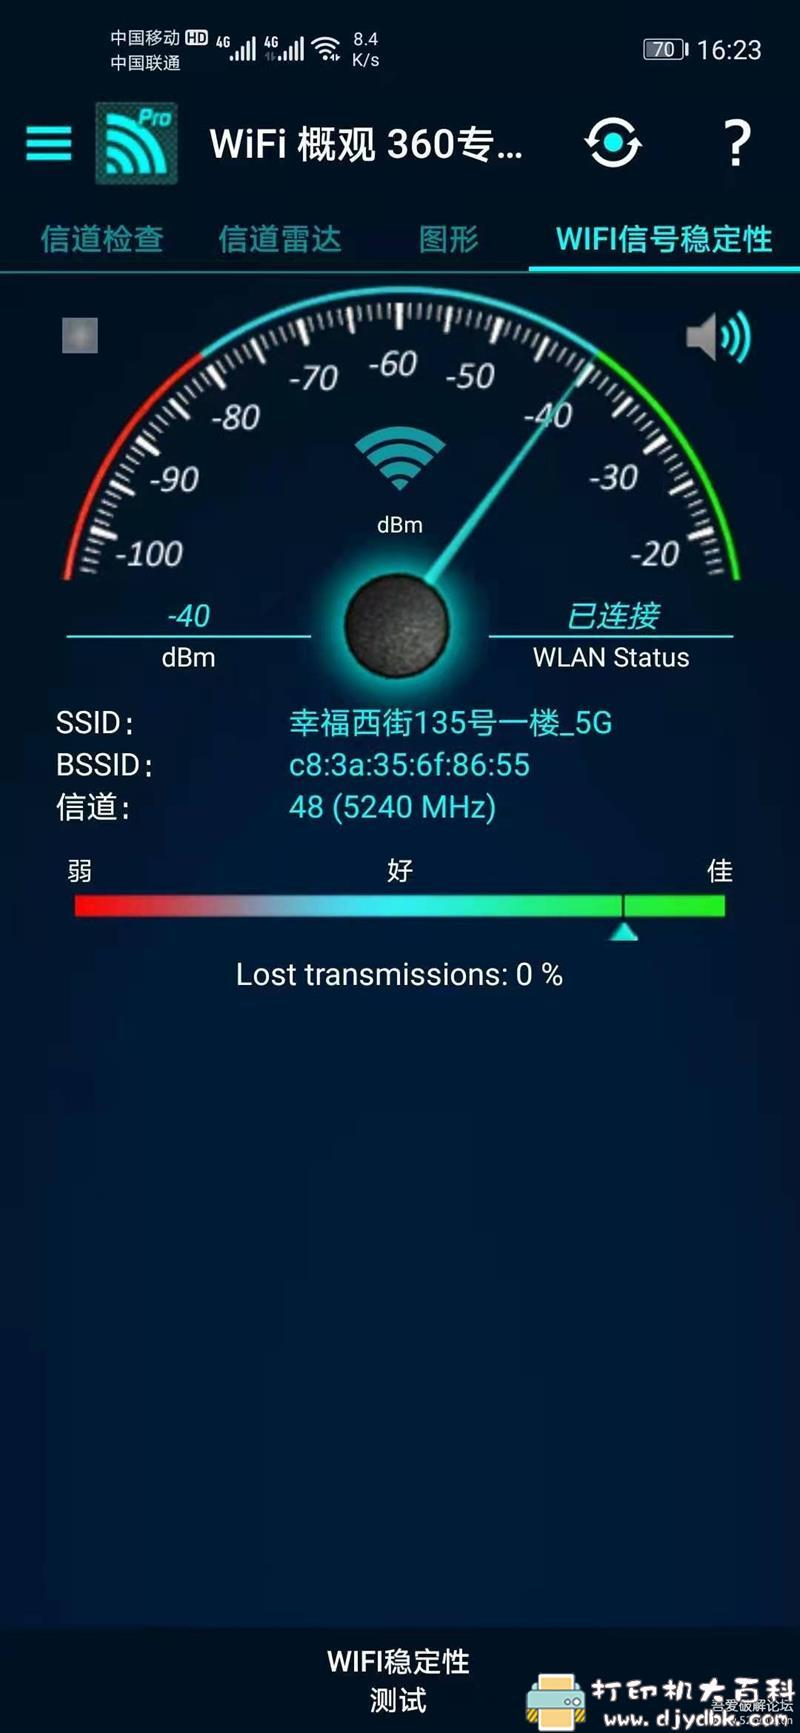 [Android]WIFI概观360专业版4.62.08,附使用教程 配图 No.6